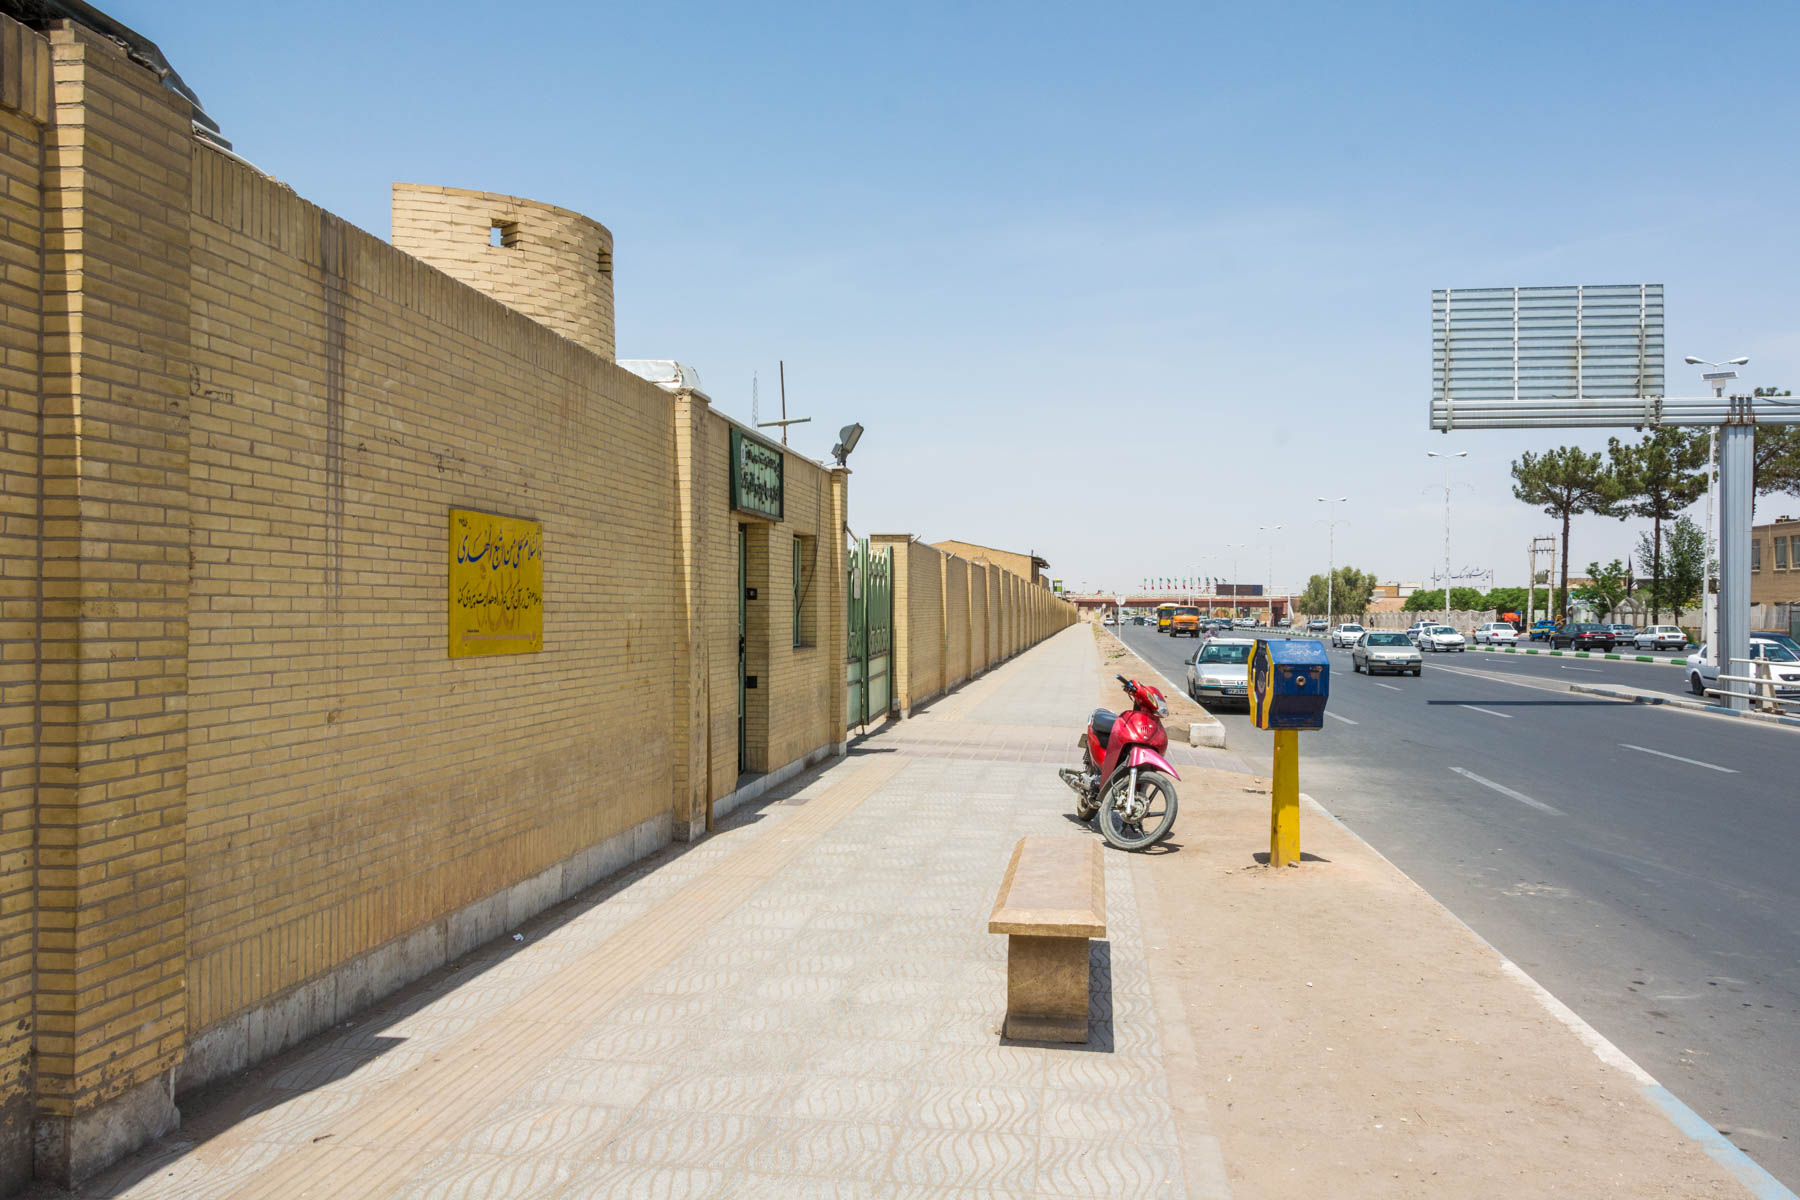 The yellow brick wall along Kashani street, where the Passport and Alien Affairs office is located for getting an Iran visa extension in Yazd.